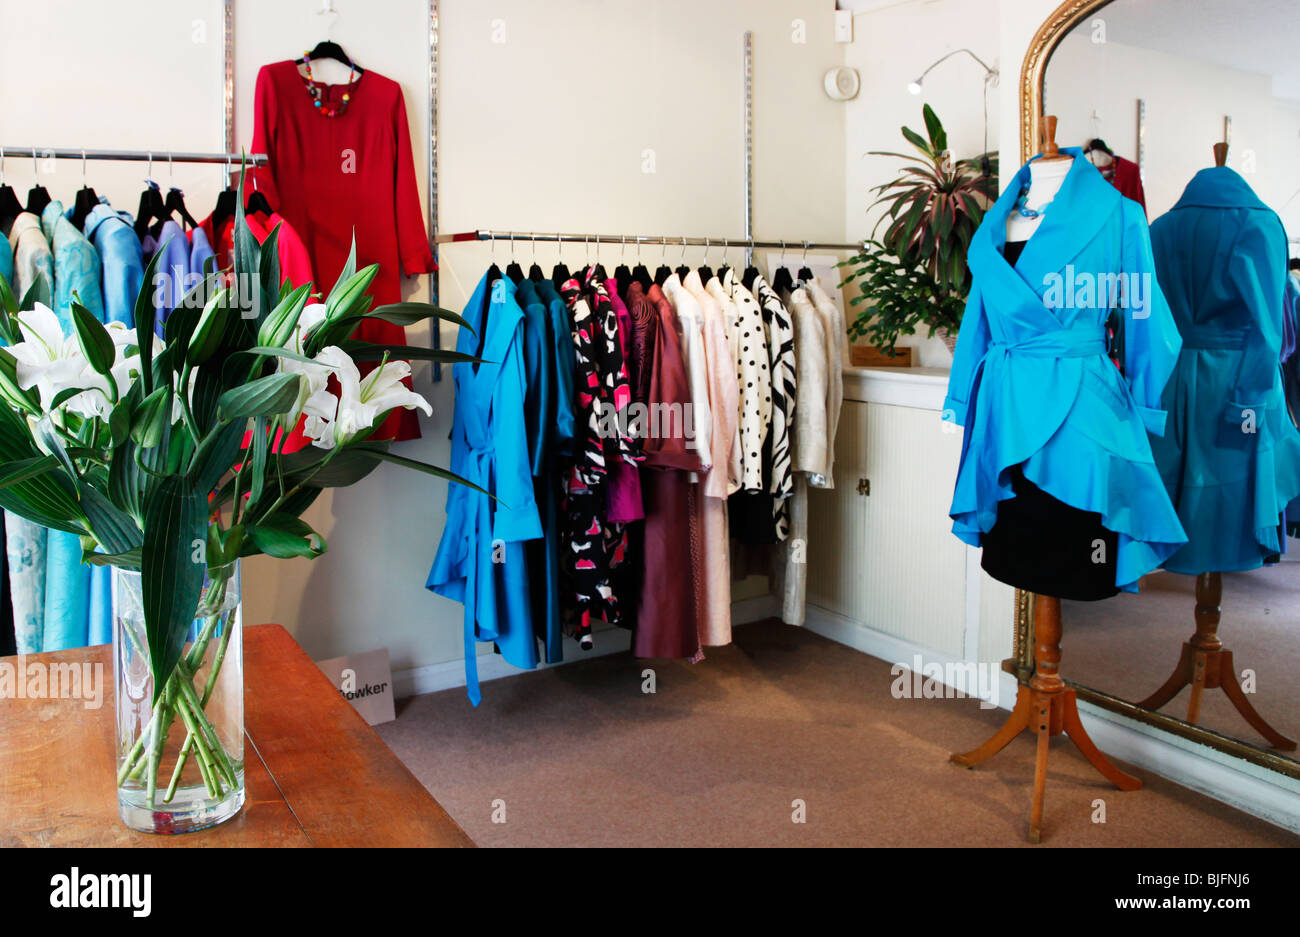 79612cf6213 Interior of a ladies designer fashion store in England